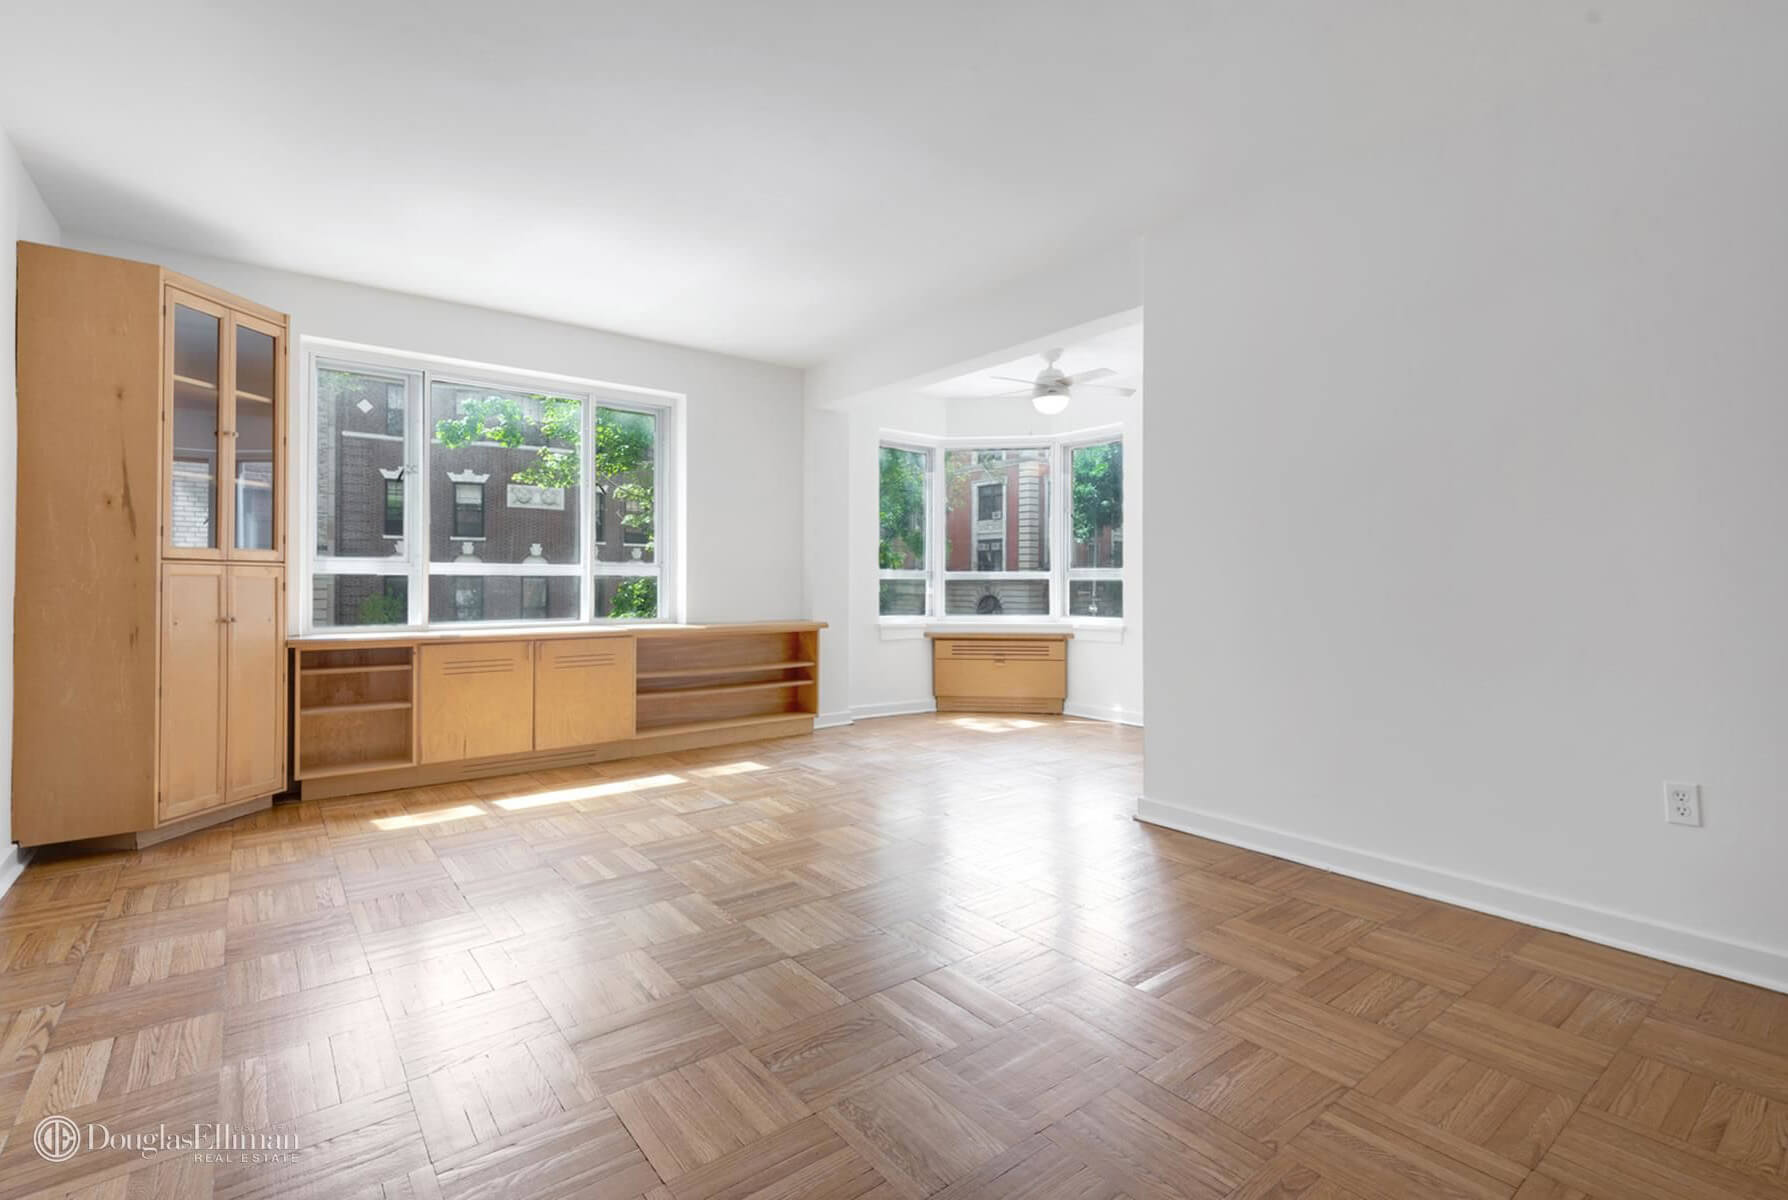 hight resolution of mid century modern co op in park slope near grand army plaza with parquet asks 1 35 million